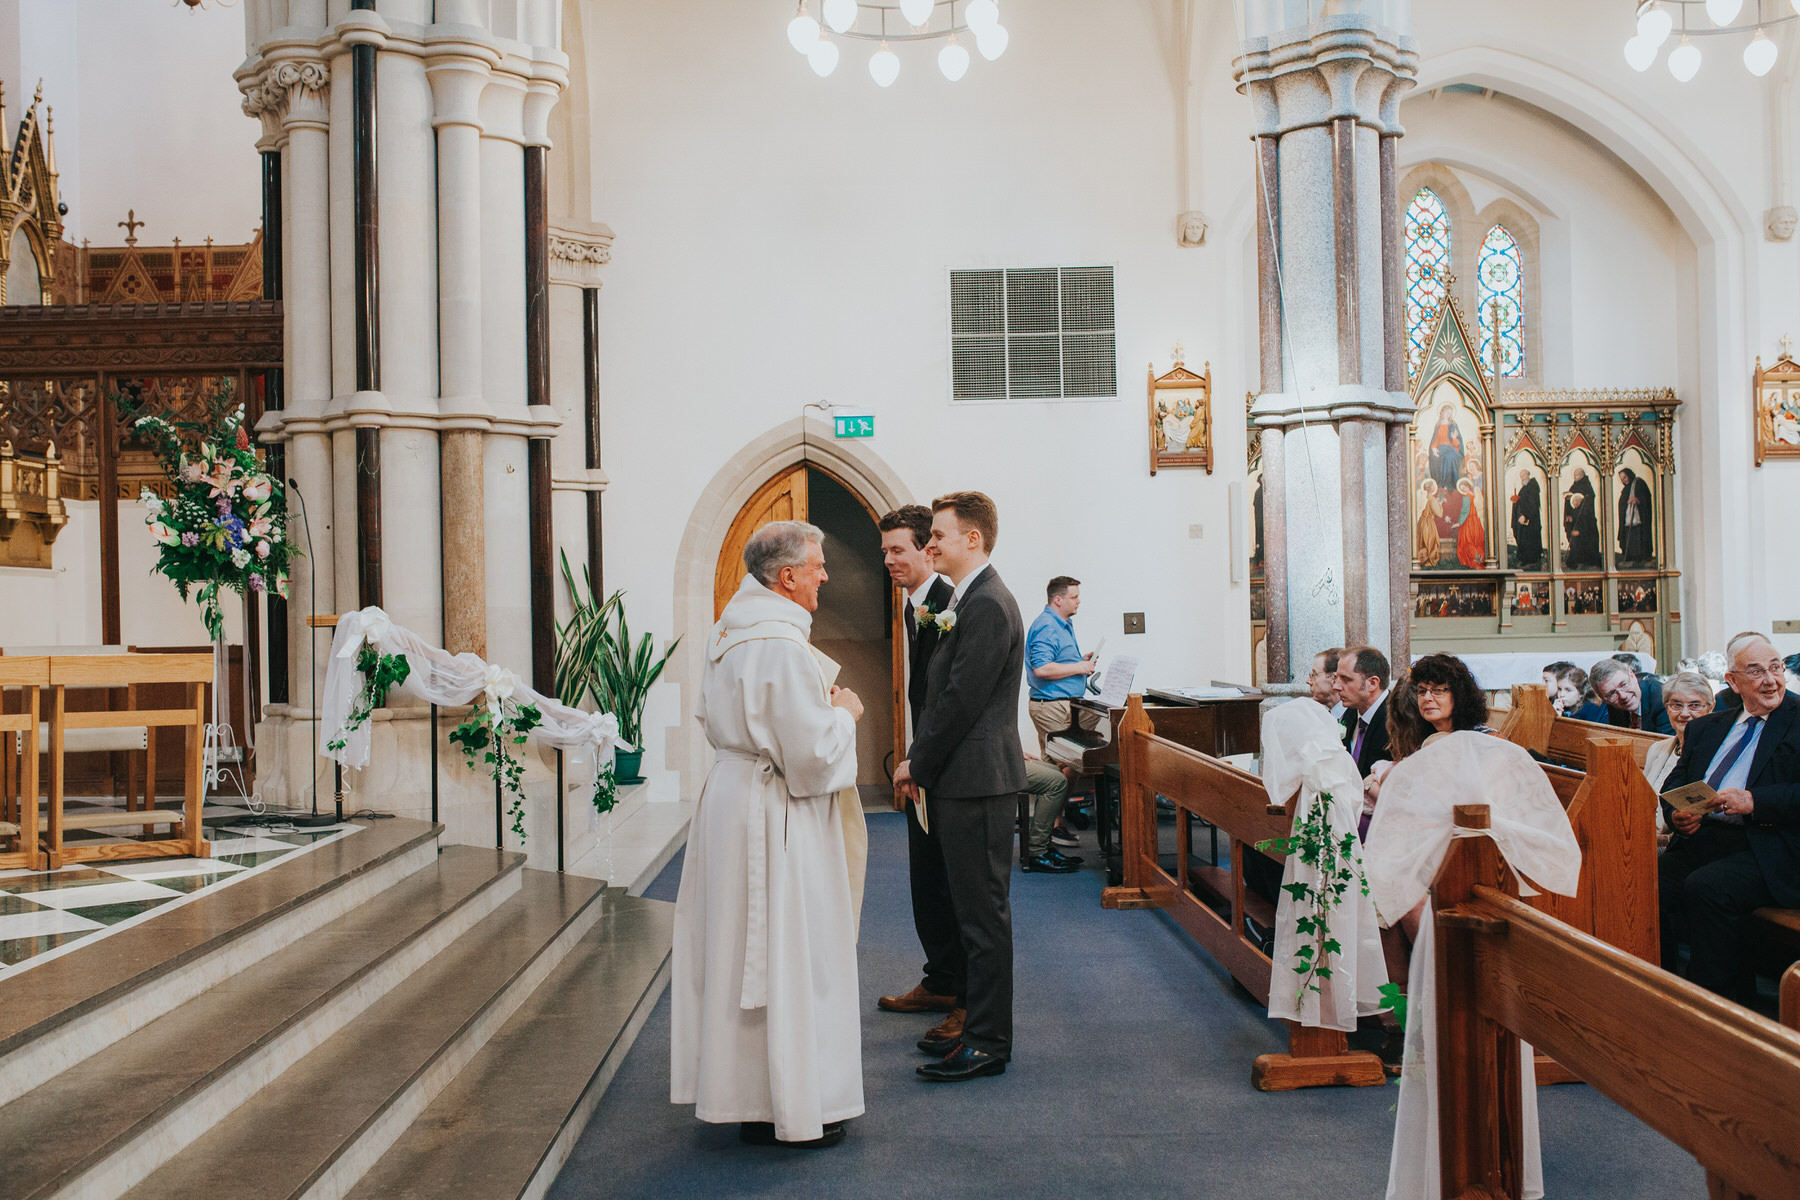 20 groom bestman waiting at altar Fulham Catholic Church wedding.jpg